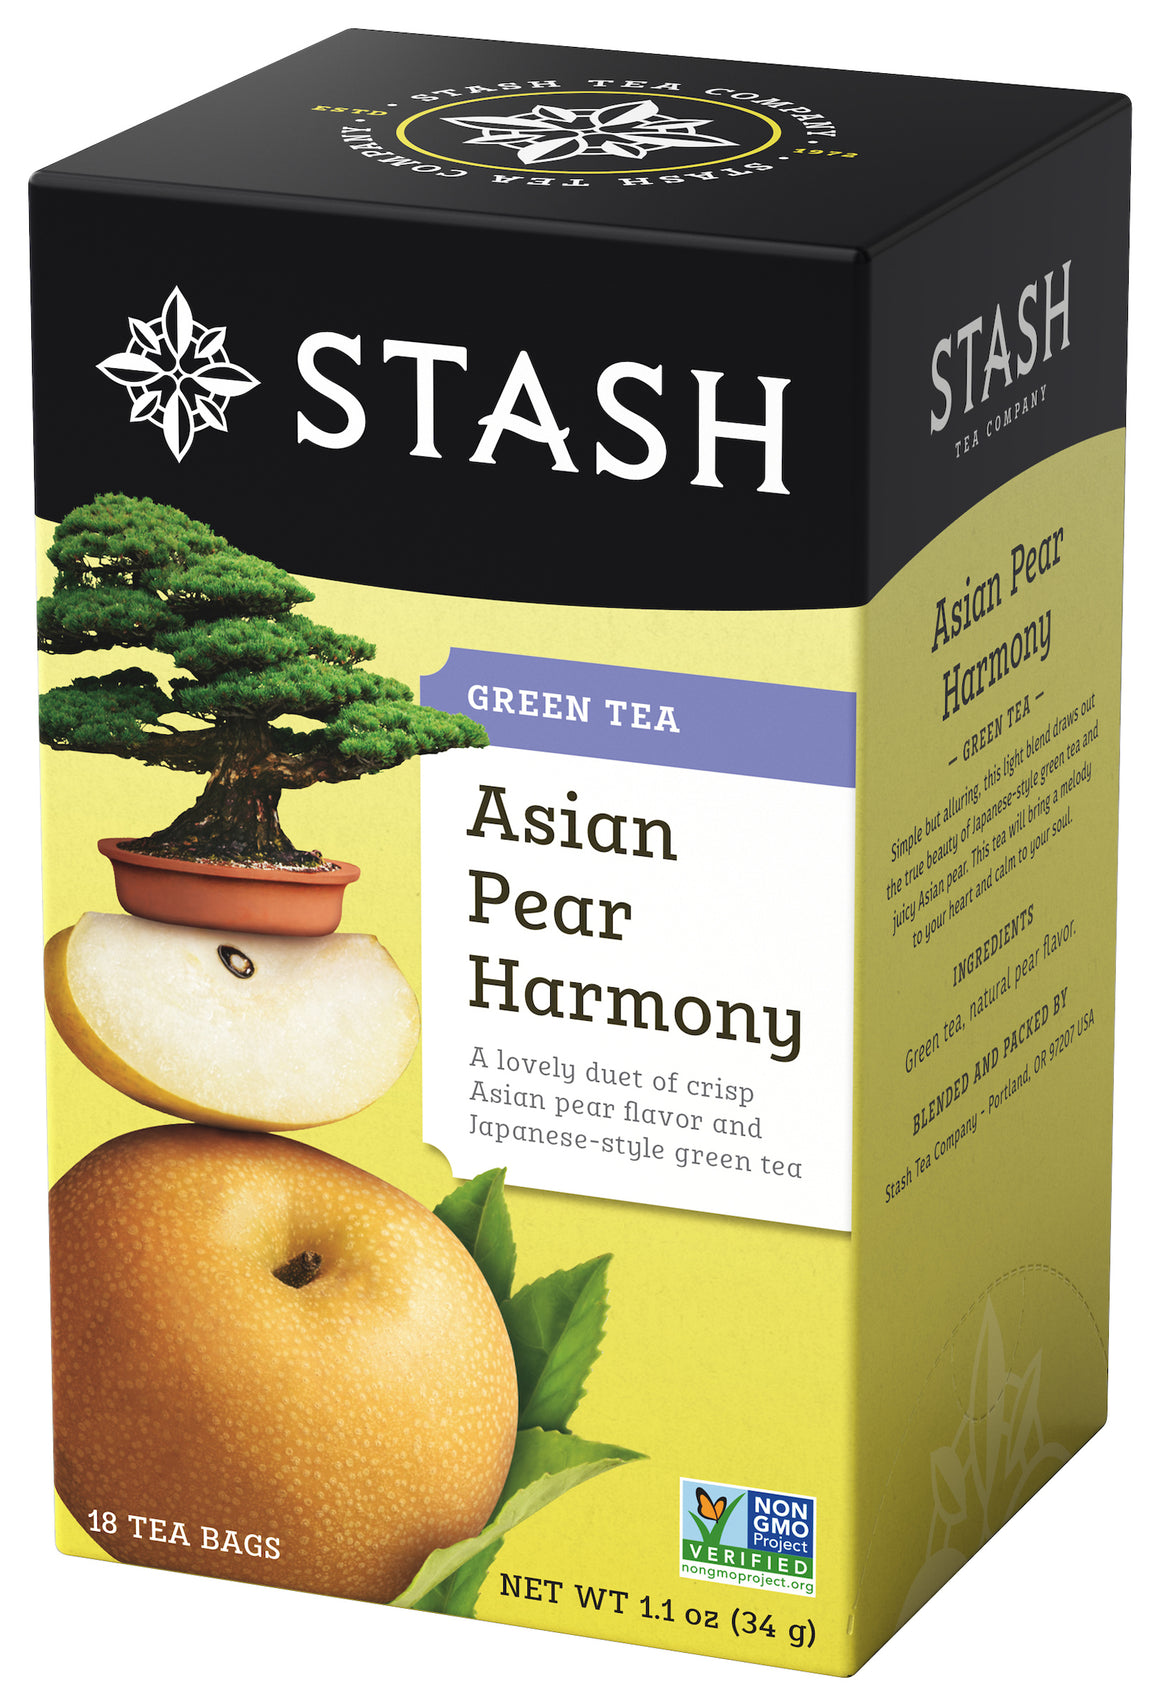 Asian Pear Harmony